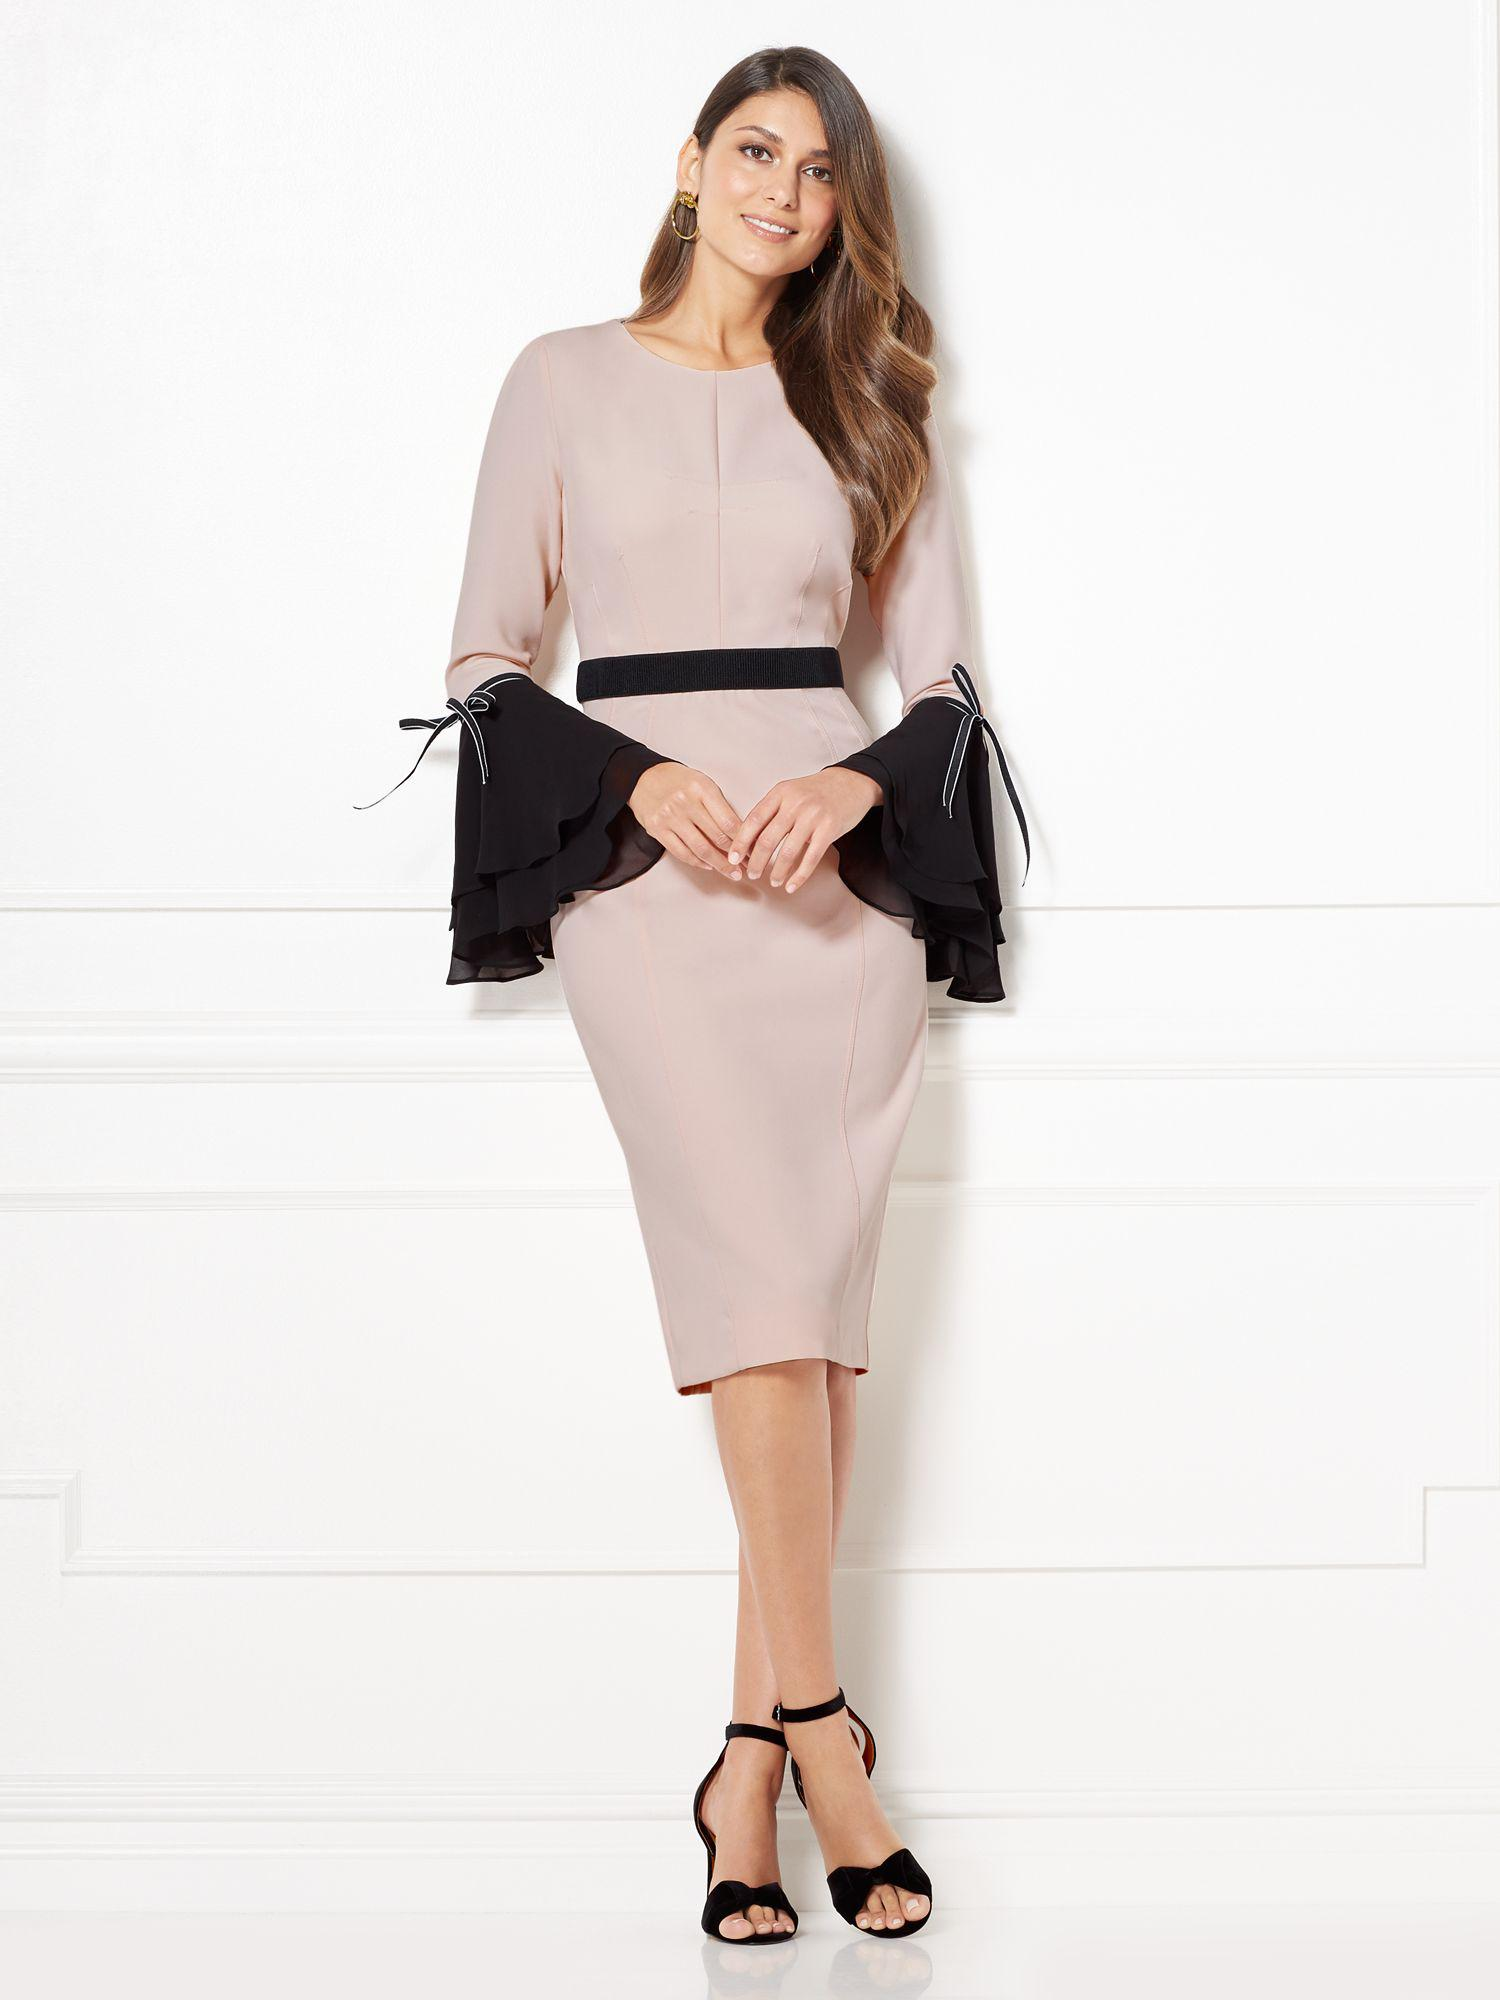 24a7666f8825 Lyst - New York   Company Eva Mendes Collection - Augustina Dress